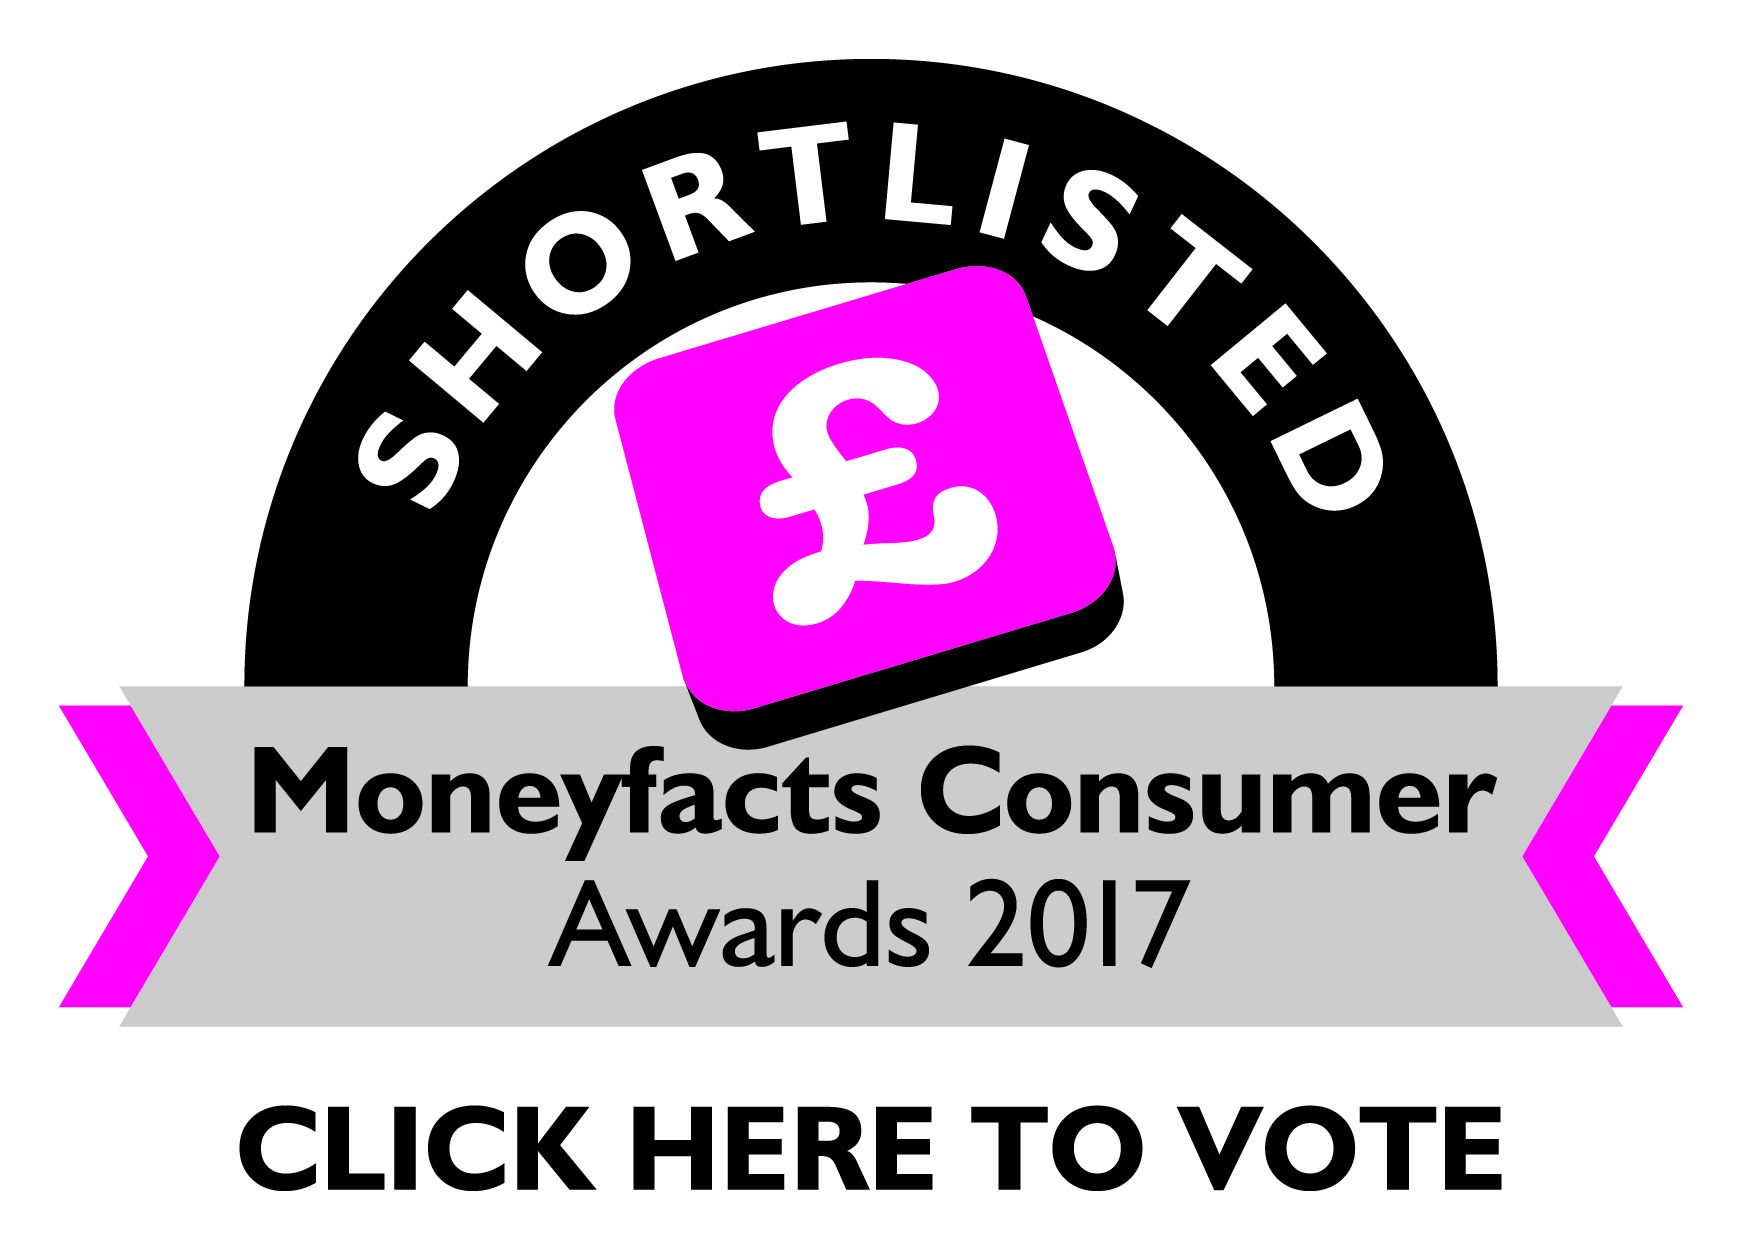 Crowdstacker is shortlisted for Peer to Peer Provider of the Year in the Moneyfacts Consumer Awards 2017. Voters in the awards will also be entered into a prize draw to WIN £1000. Click here to vote  Your capital is at risk when you lend to businesses